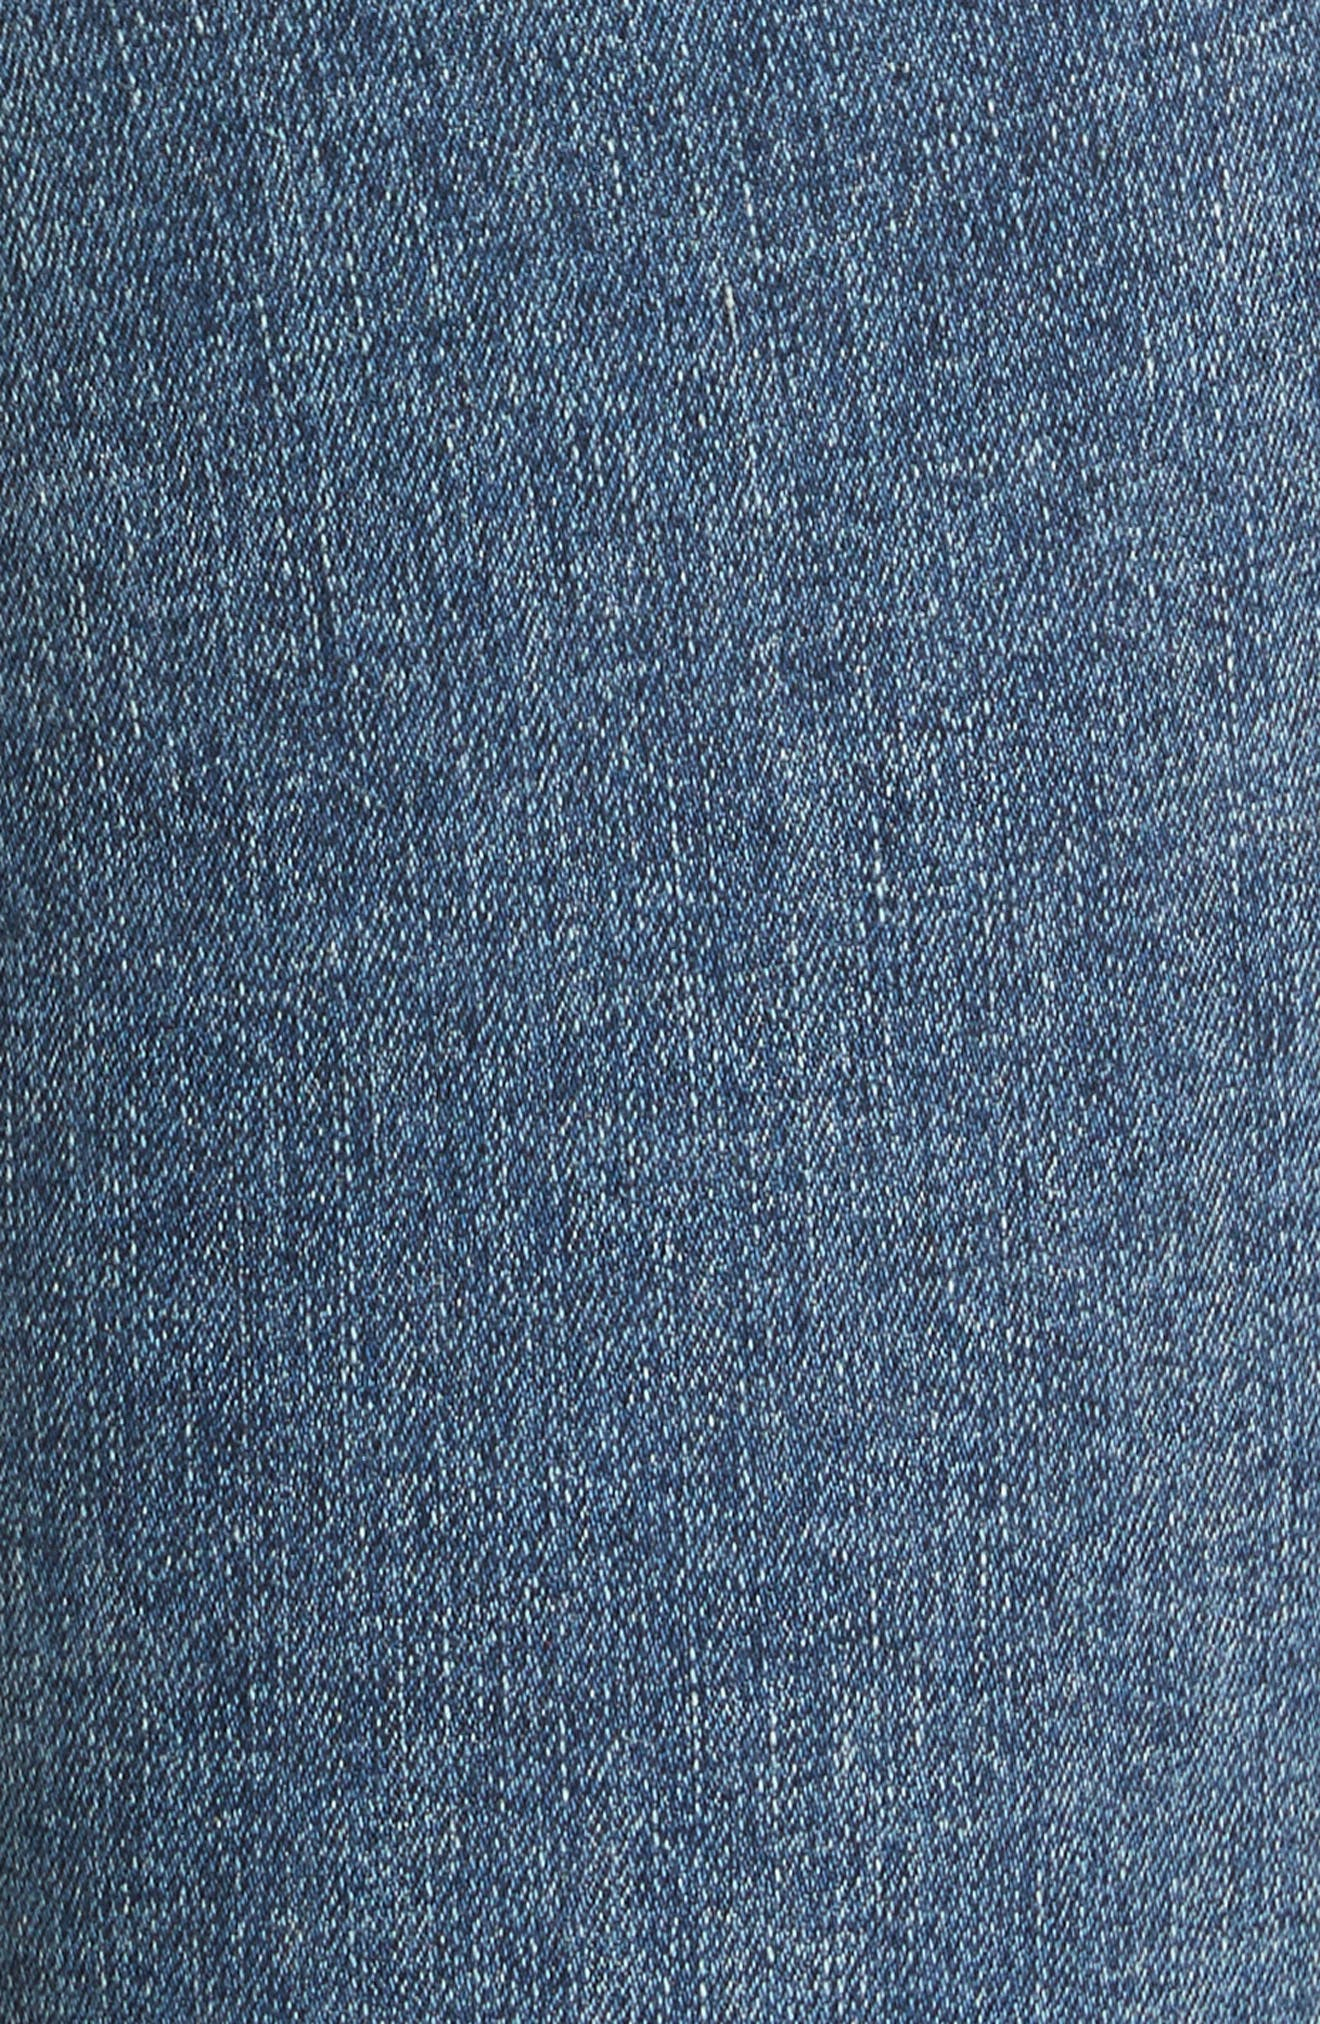 High Waist Ankle Skinny Jeans,                             Alternate thumbnail 5, color,                             Clean Commodore